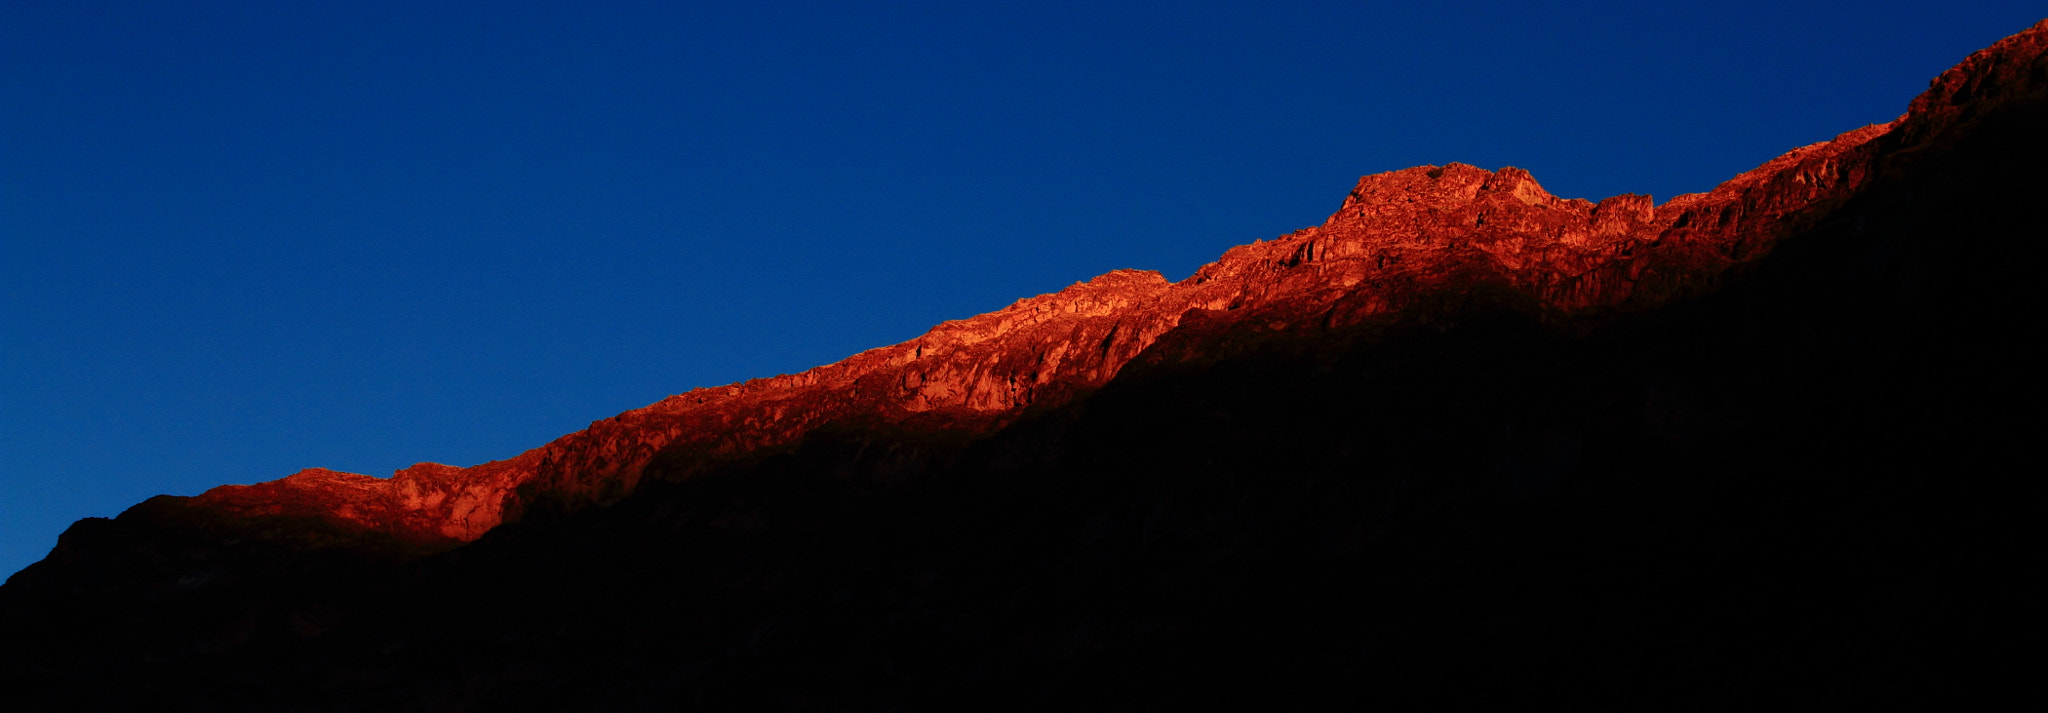 Photograph Last Light in Colca Canyon by Paul Bellinger on 500px